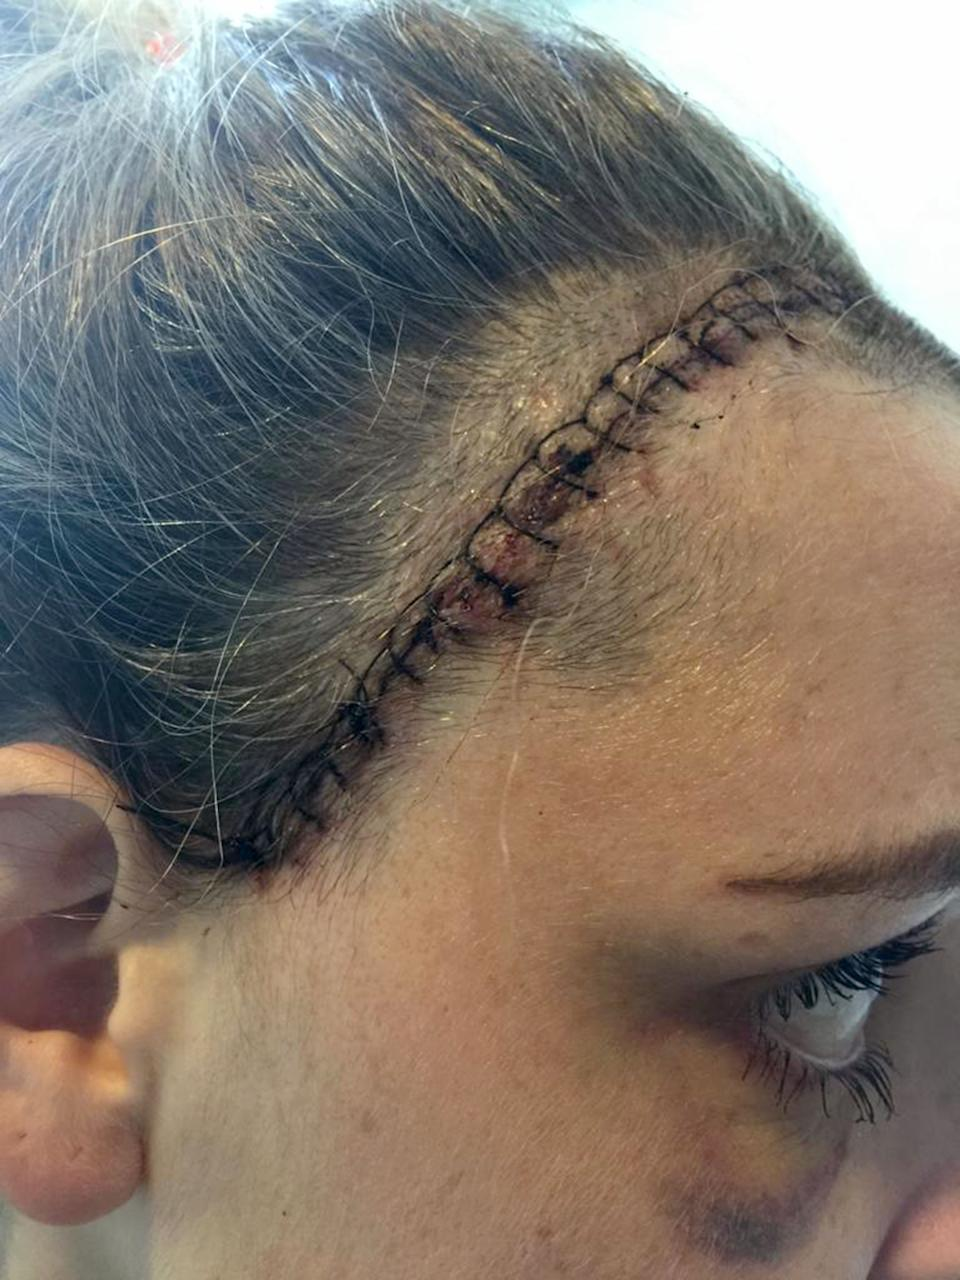 The stitches Emily had after surgery [Photo: Caters]